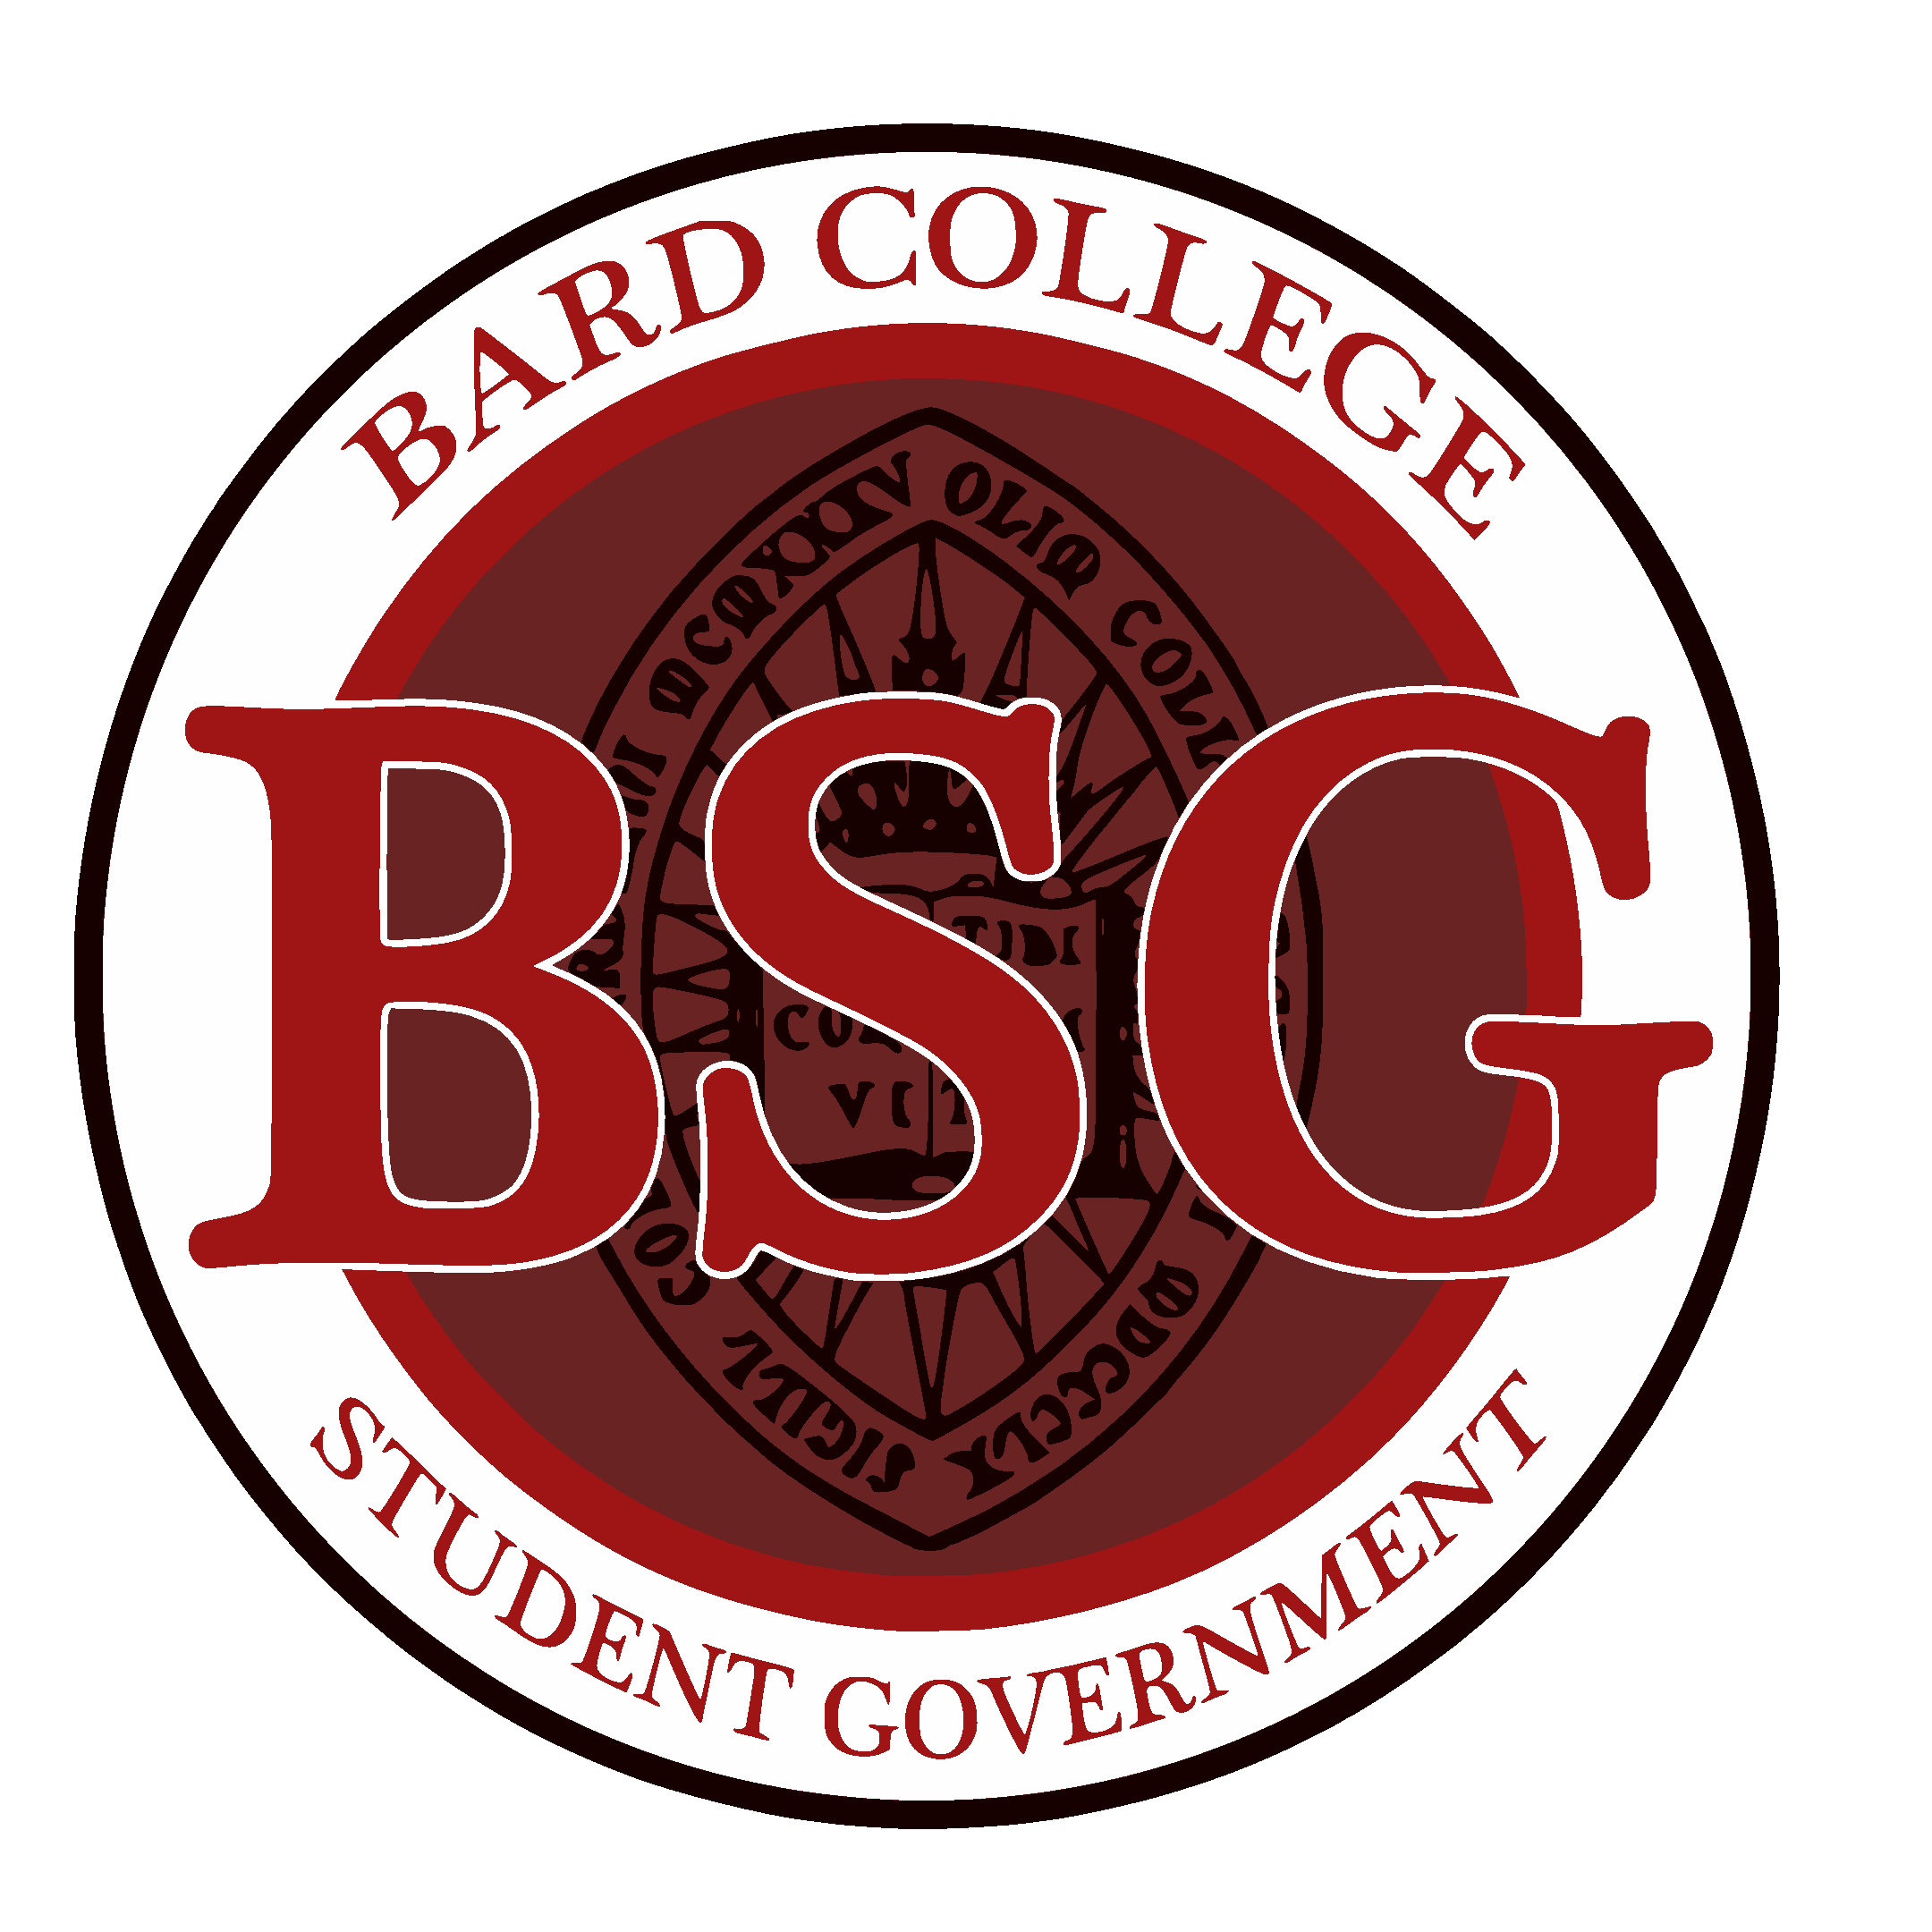 Bard Student Clubs